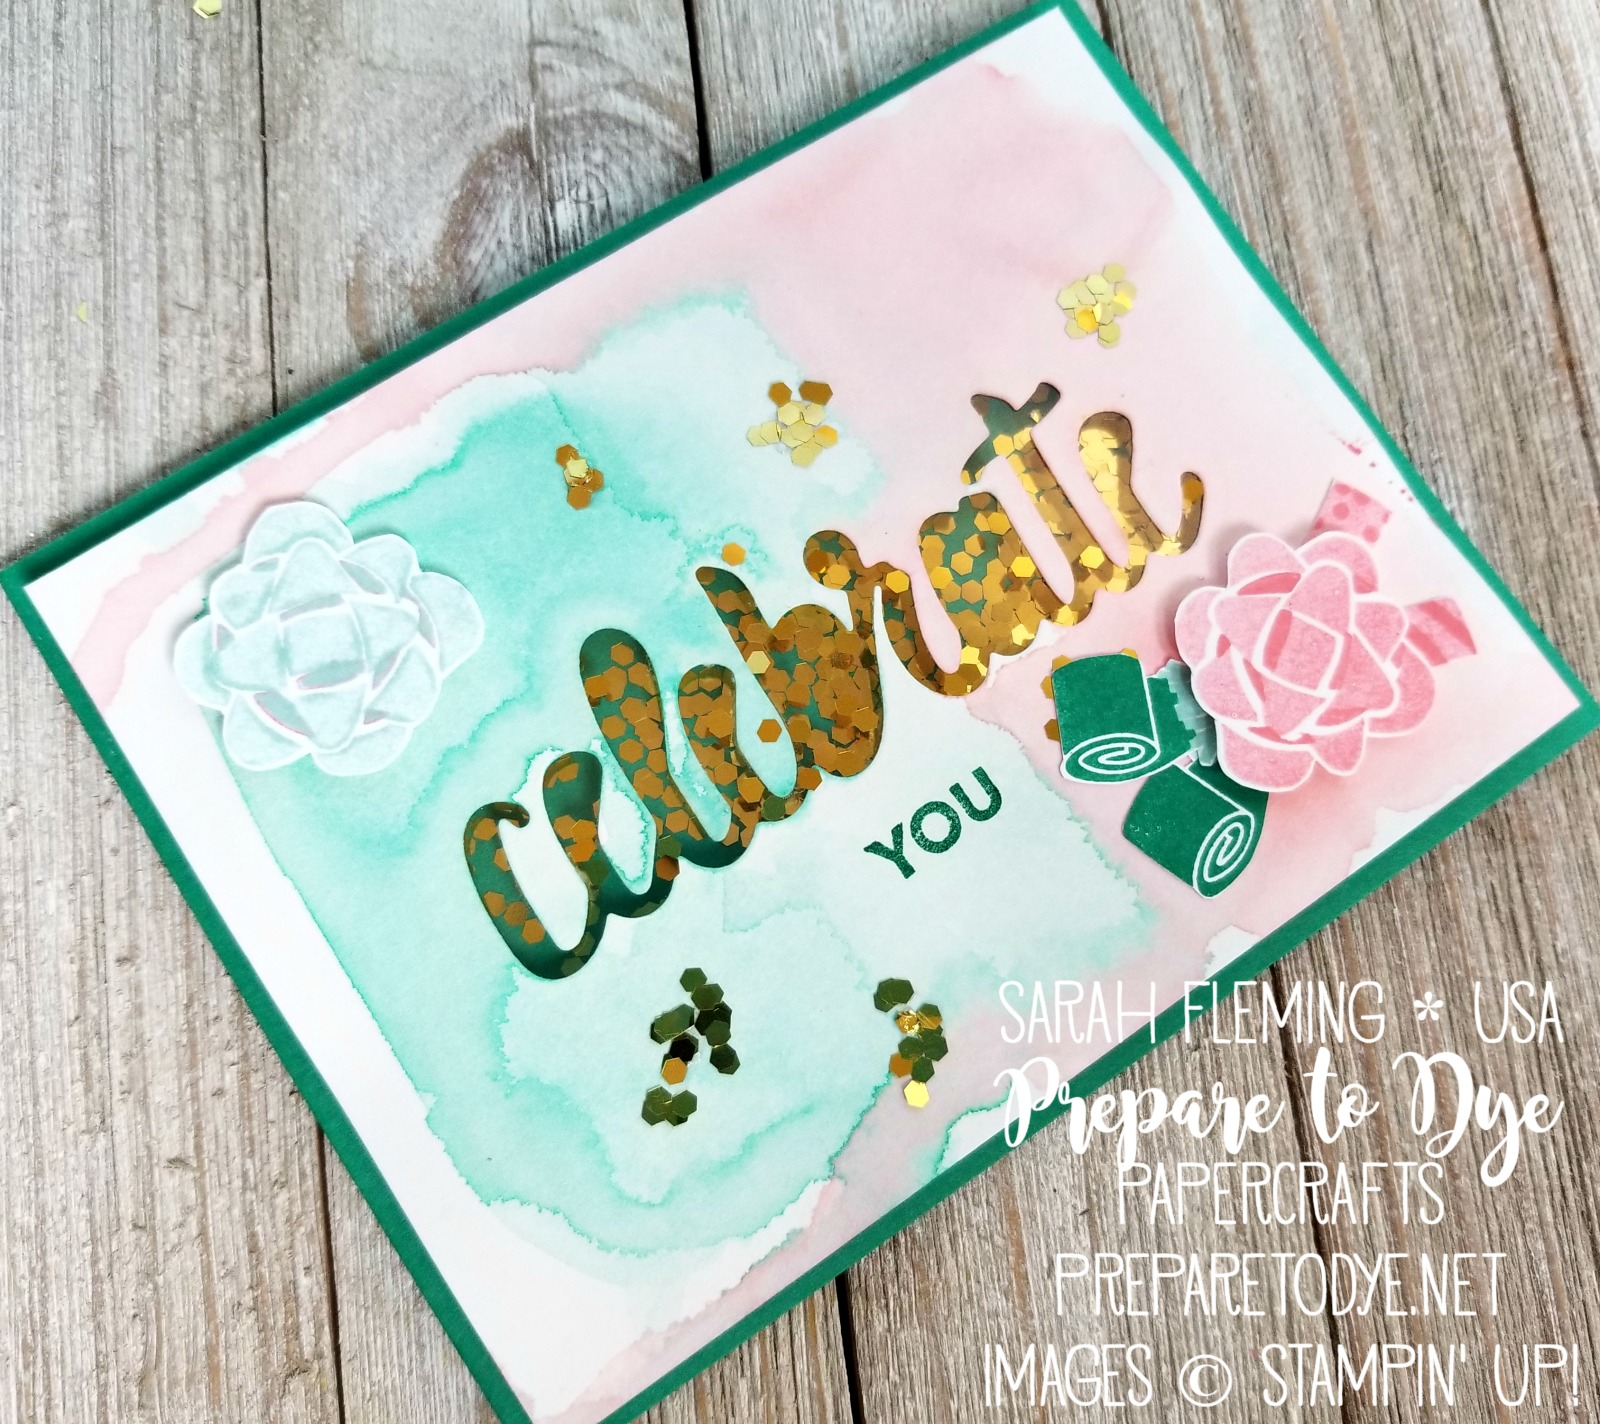 Stampin' Up! handmade shaker birthday card using Celebrate You thinlits, Amazing You stamp set, Picture Perfect Birthday stamp set - tutorial video with FREE Sale-A-Bration papercrafting products - Sarah Fleming - Prepare to Dye Papercrafts